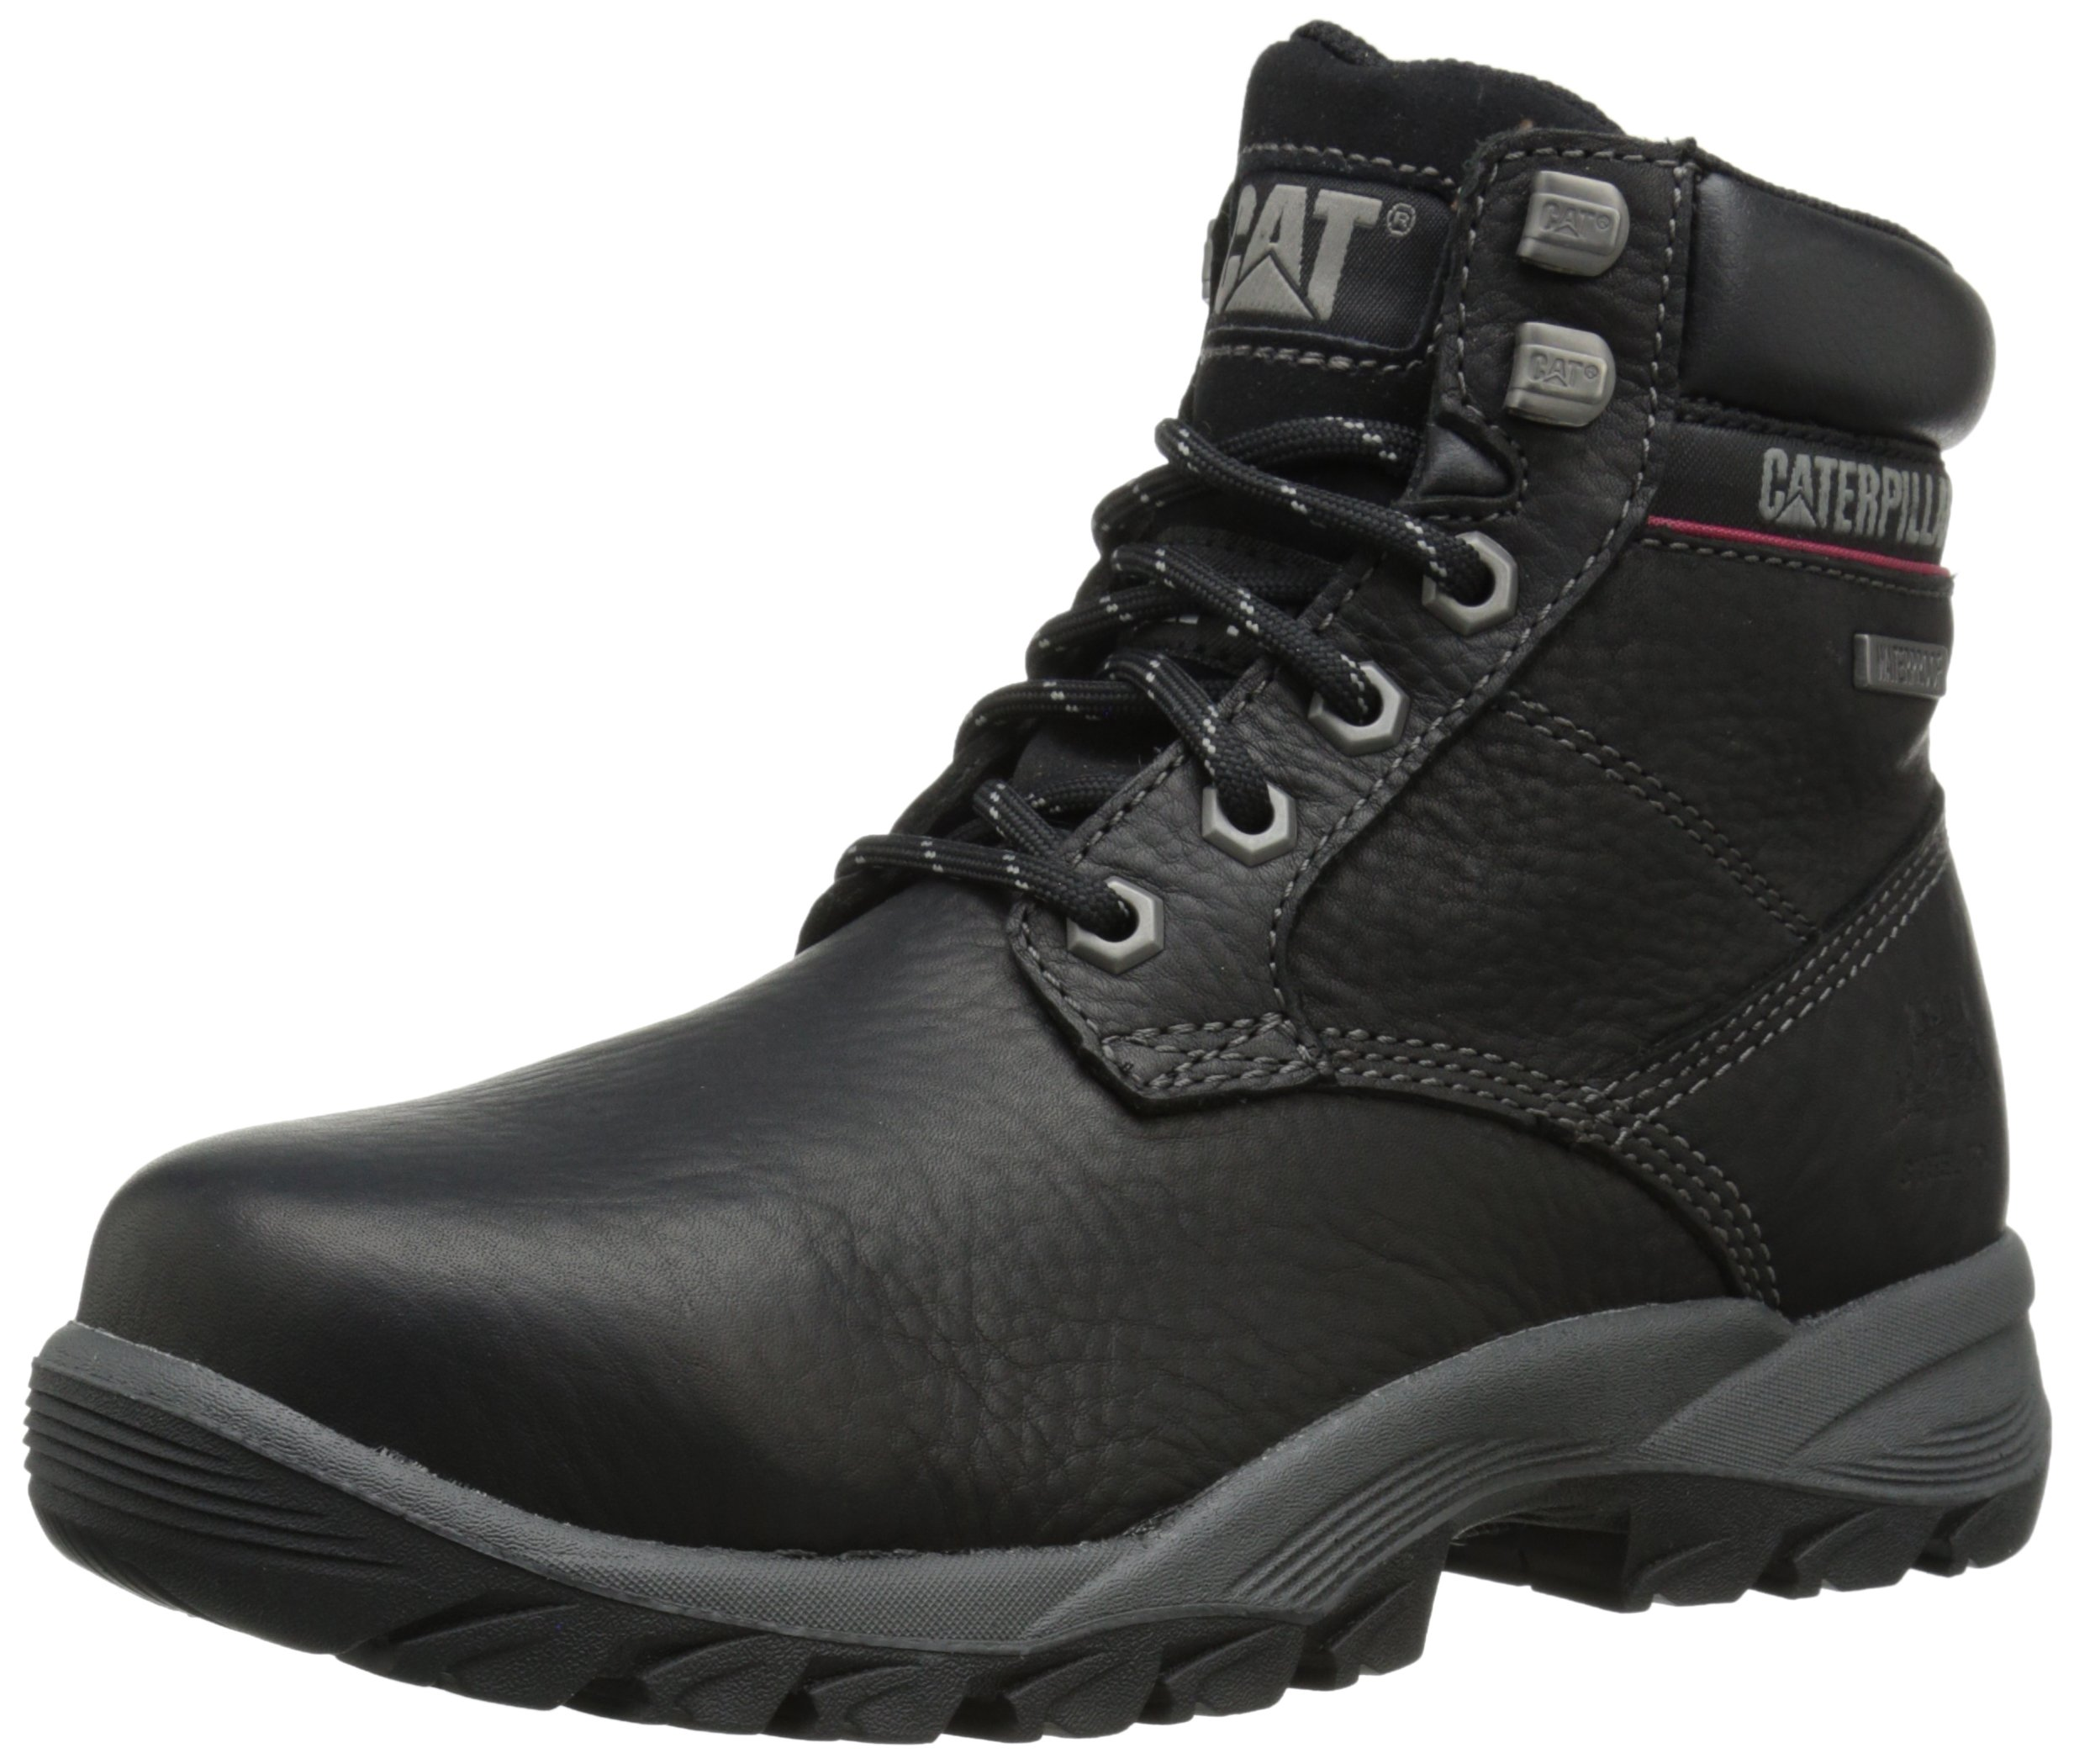 Caterpillar Women's Dryverse 6 Inch Waterproof Steel Toe Work Boot, Black, 8 M US